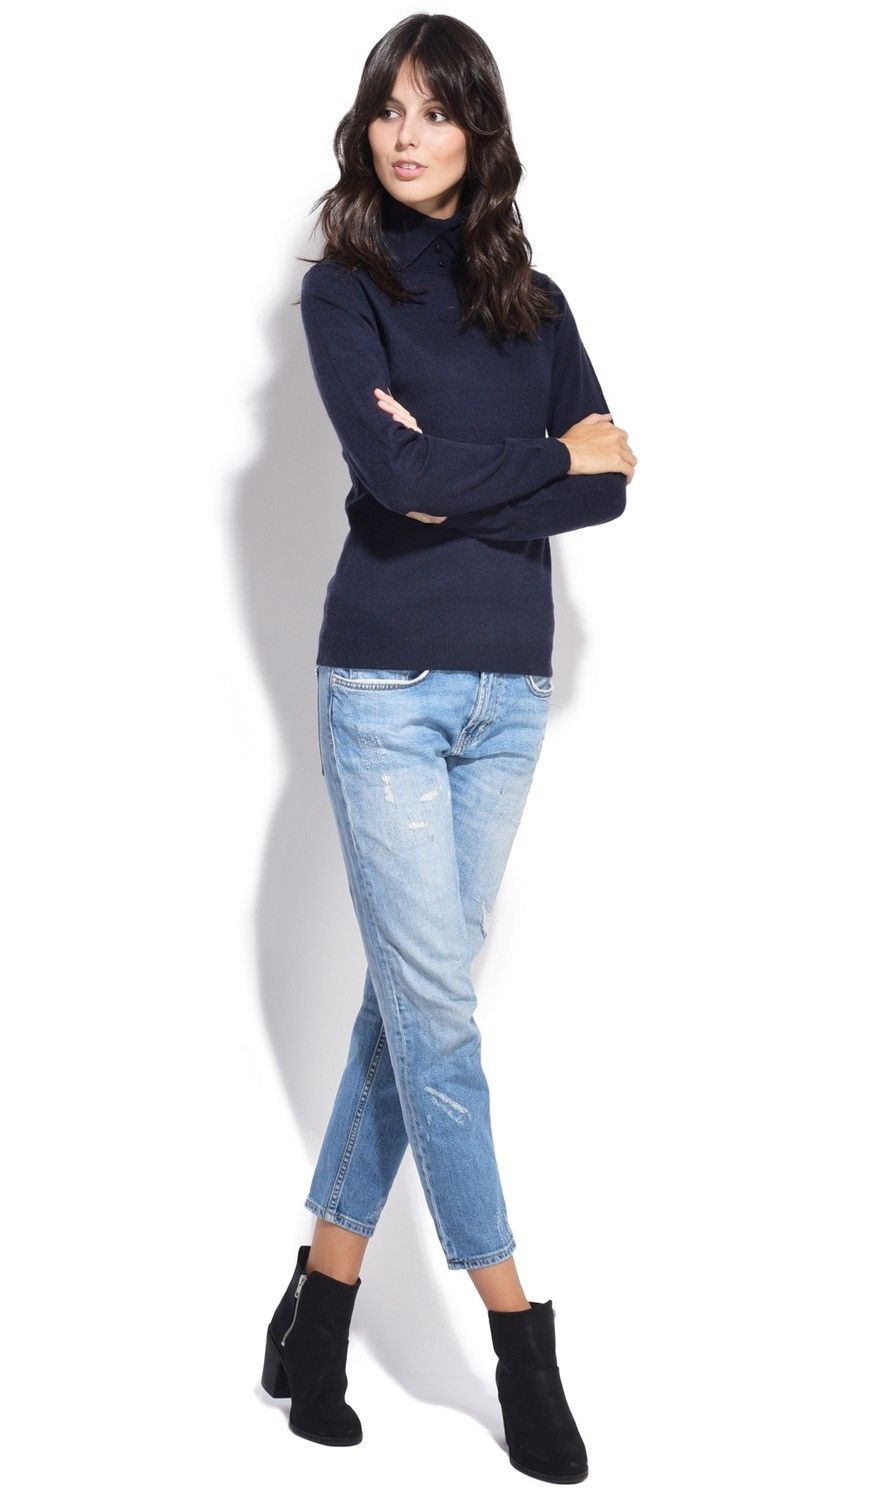 Assuili Shirt Collar Sweater in Navy